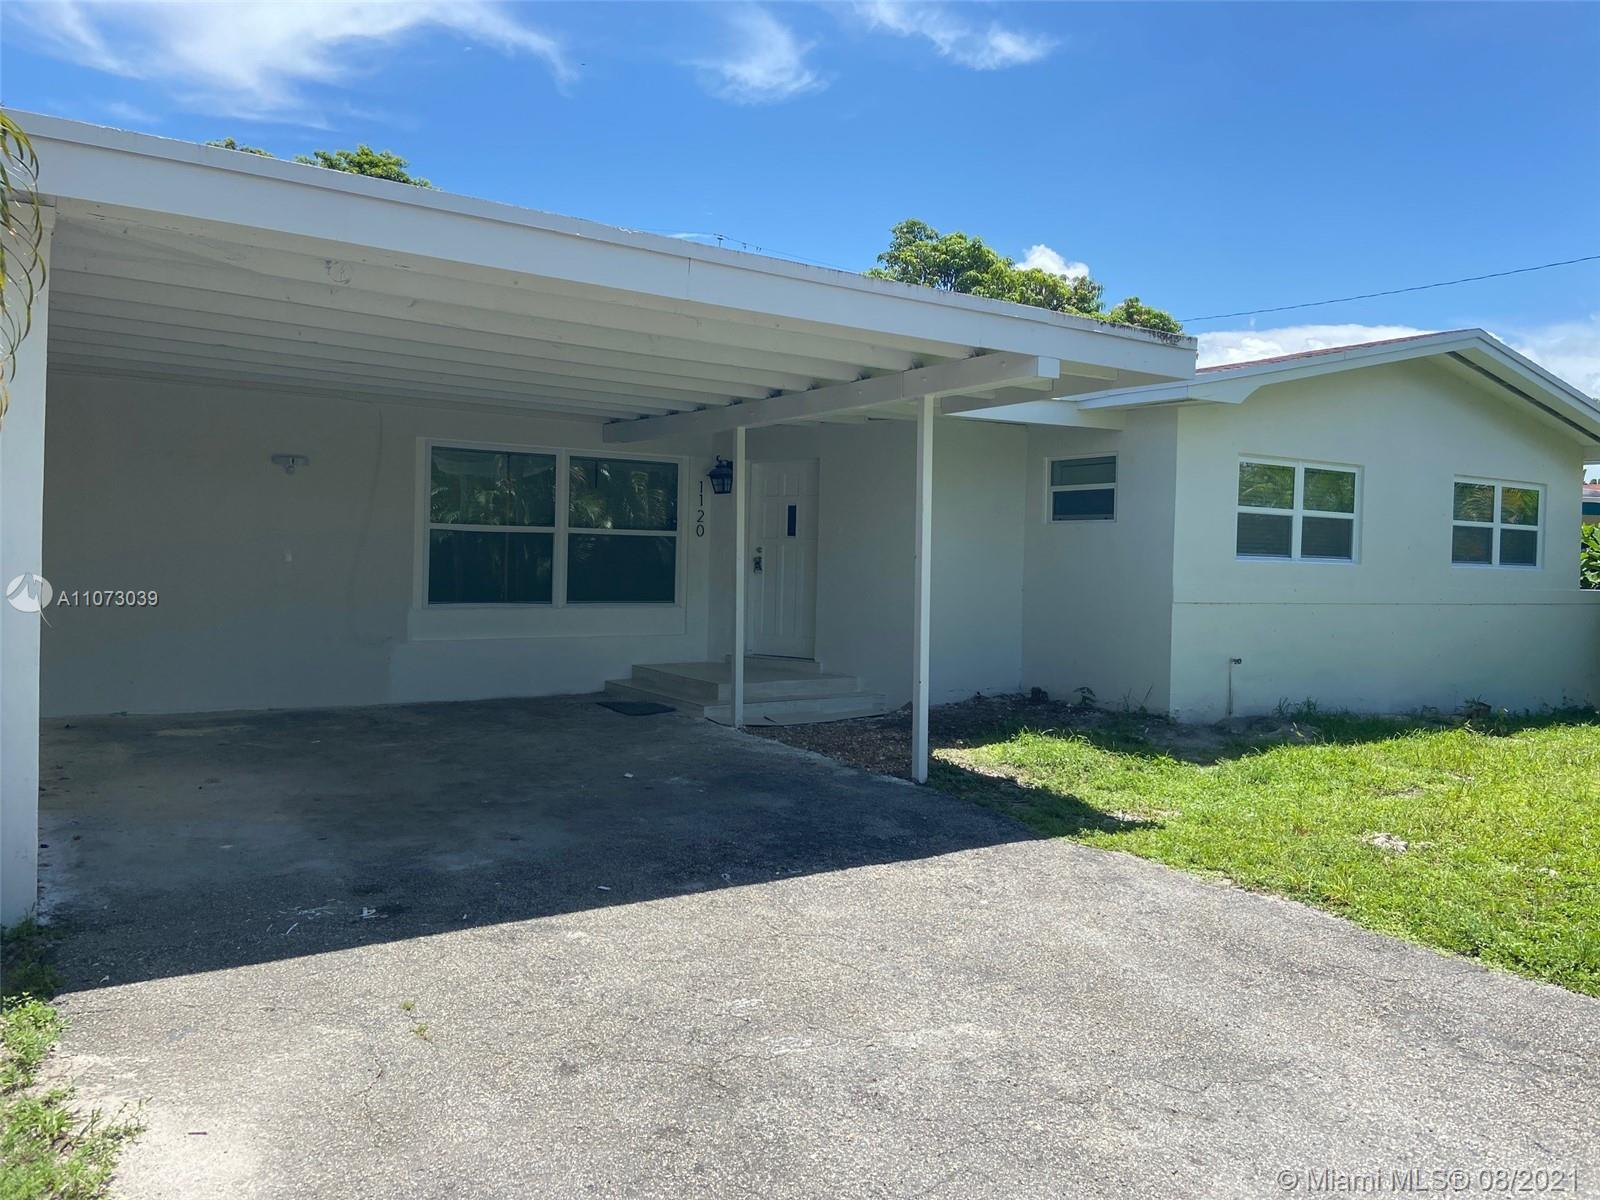 BEAUTIFULLY UPDATED LARGE, CLEAN, AND SPACIOUS, 4/2 BY BISCAYNE PARK. BRAND NEW UPDATED LARGE PORCEL